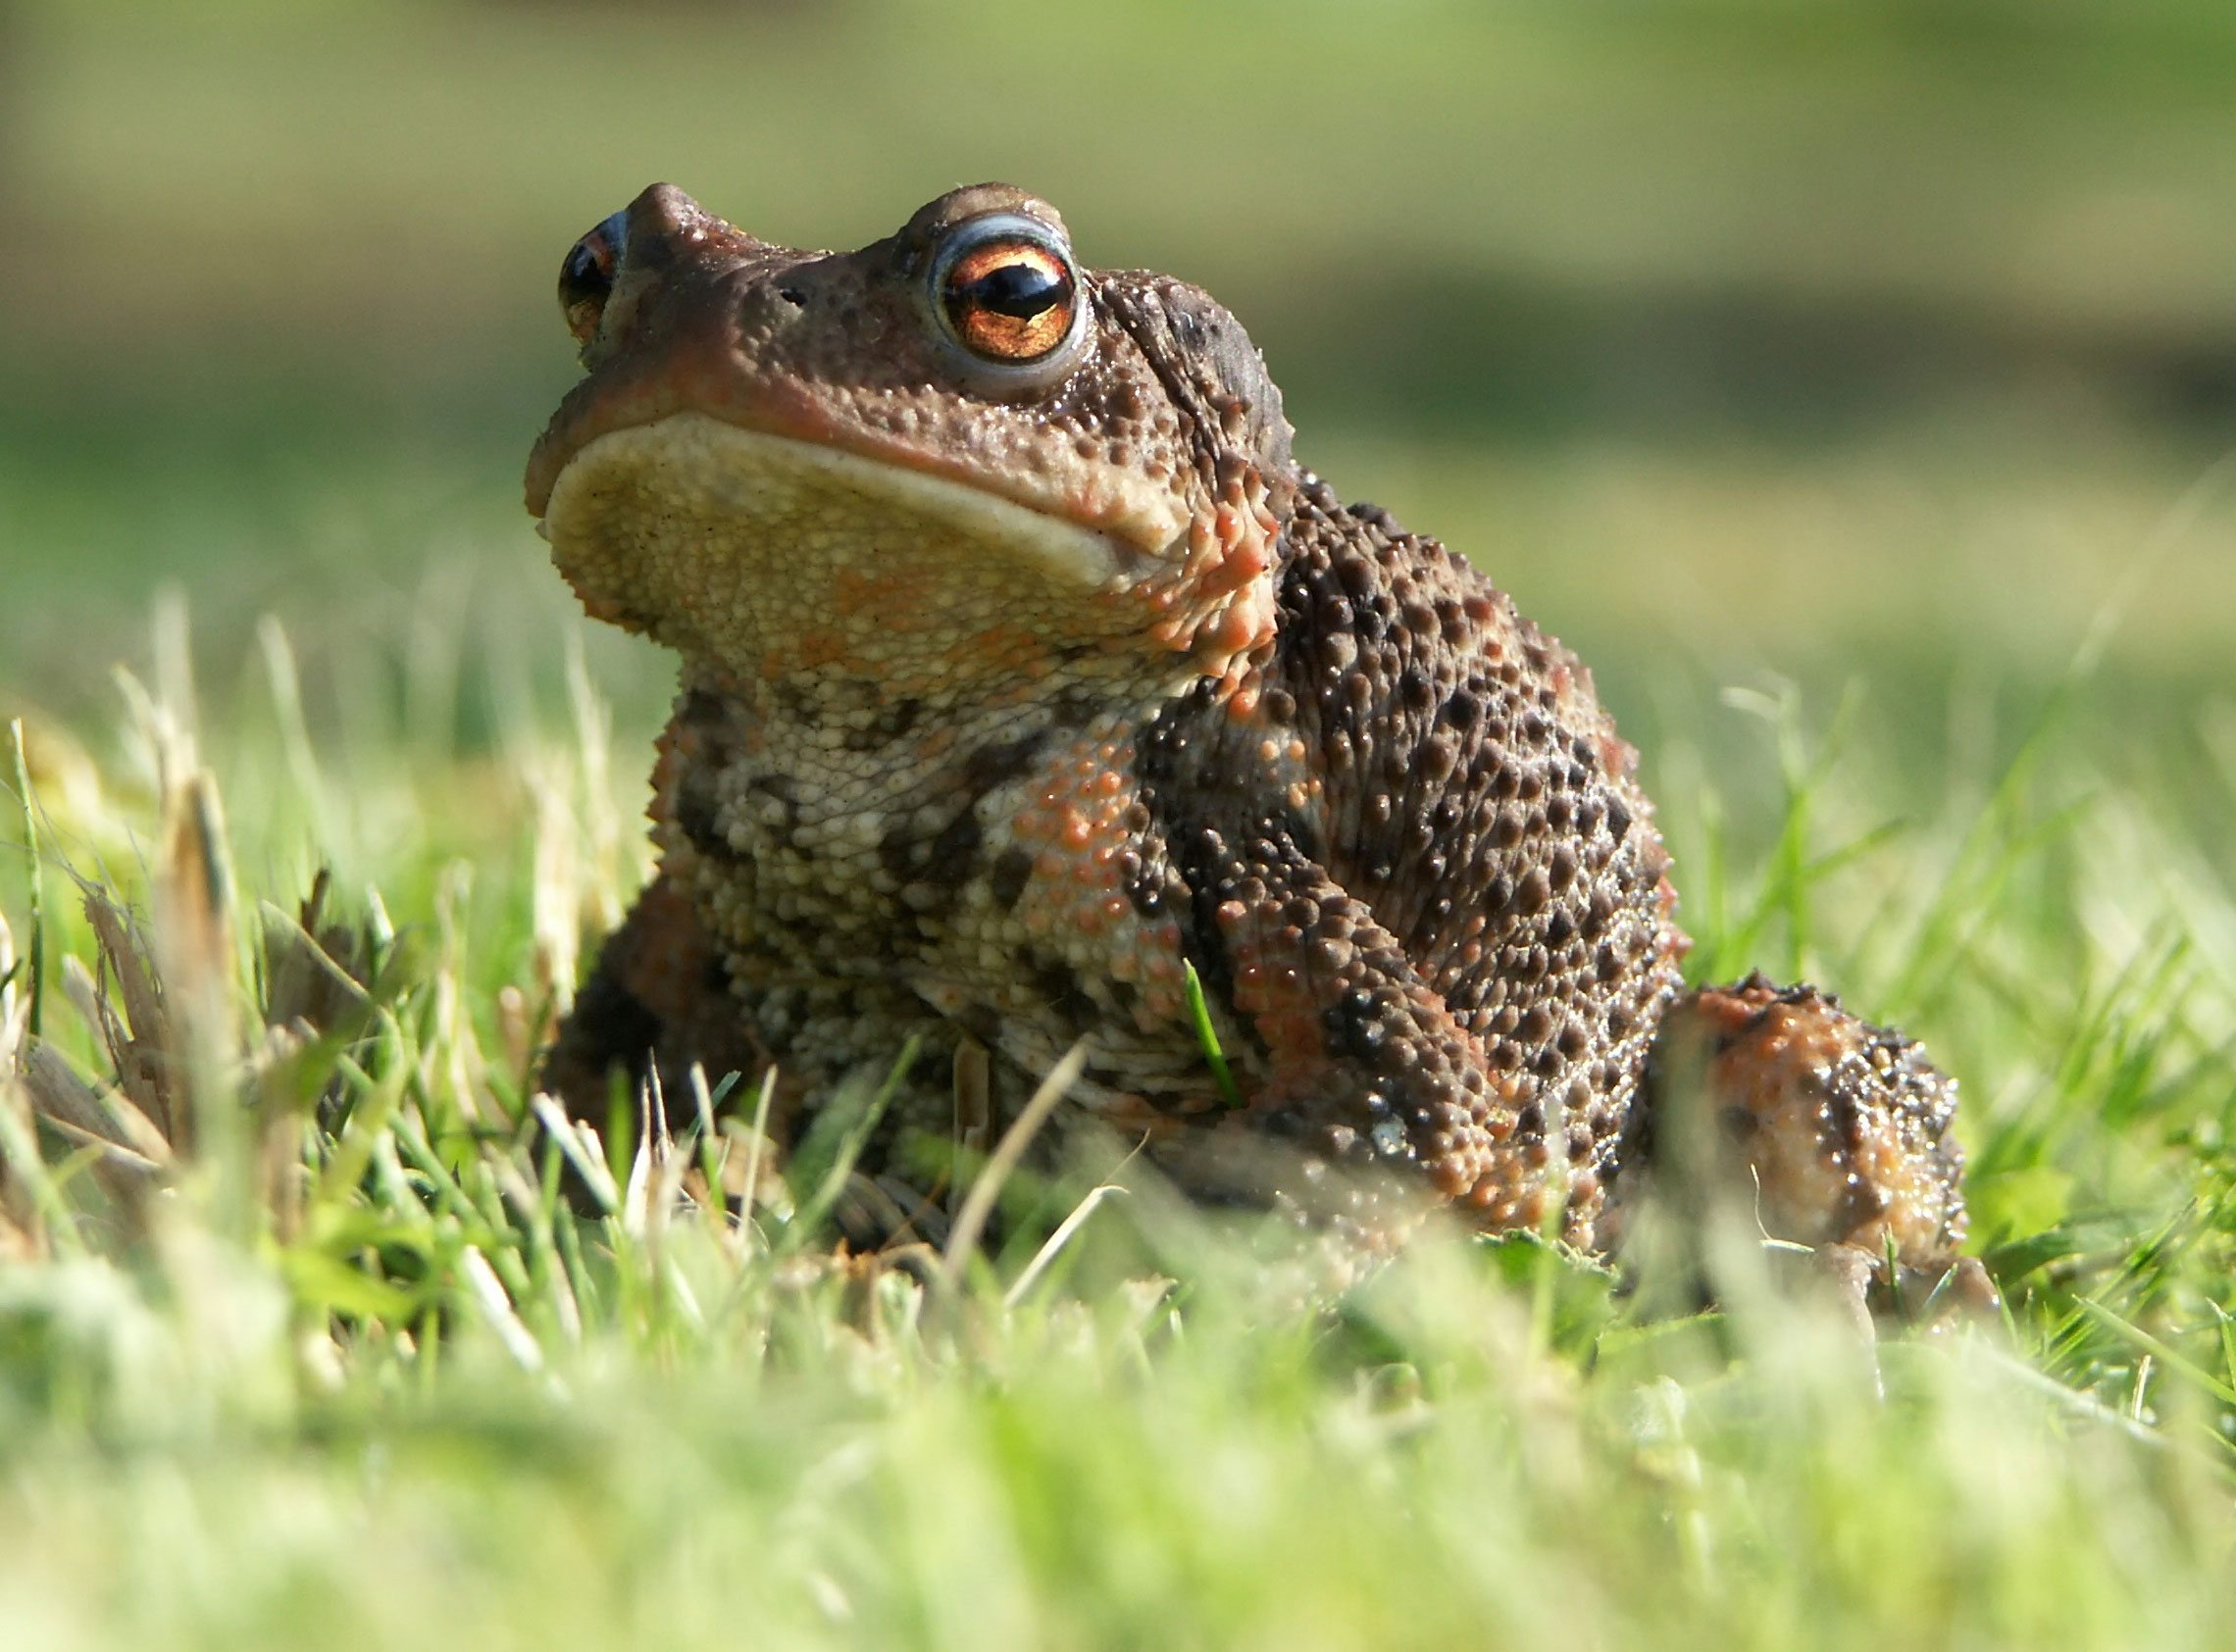 Toad Control: How To Get Rid Of Garden Toads